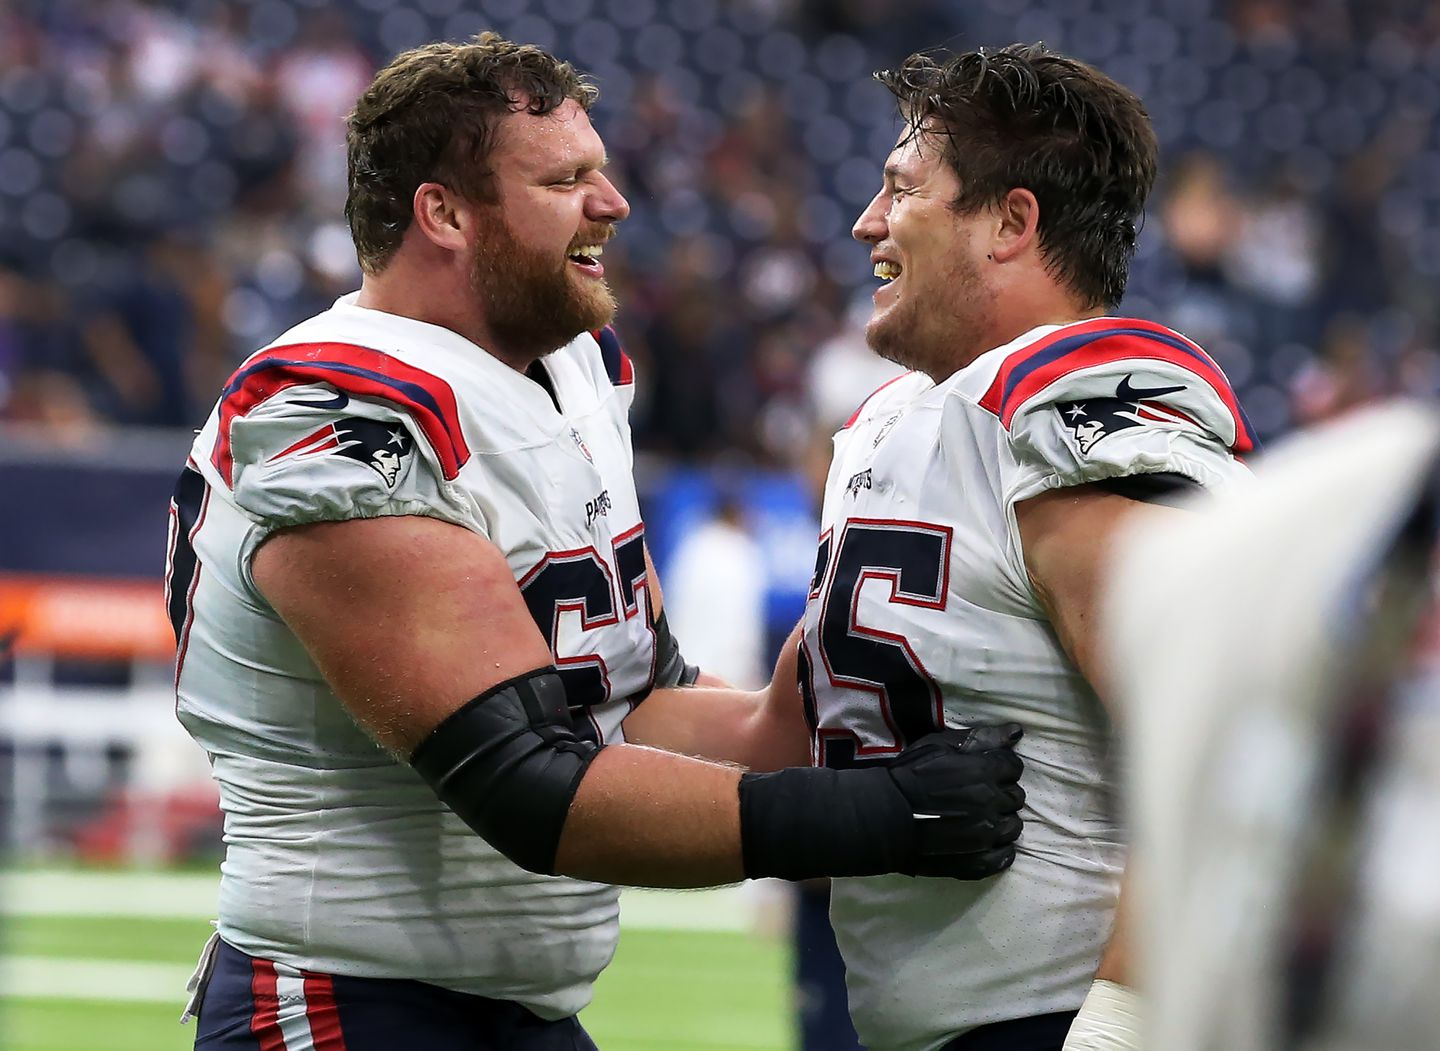 Patriots had a lot of issues against the Texans, but patchwork offensive  line was not one of them - The Boston Globe